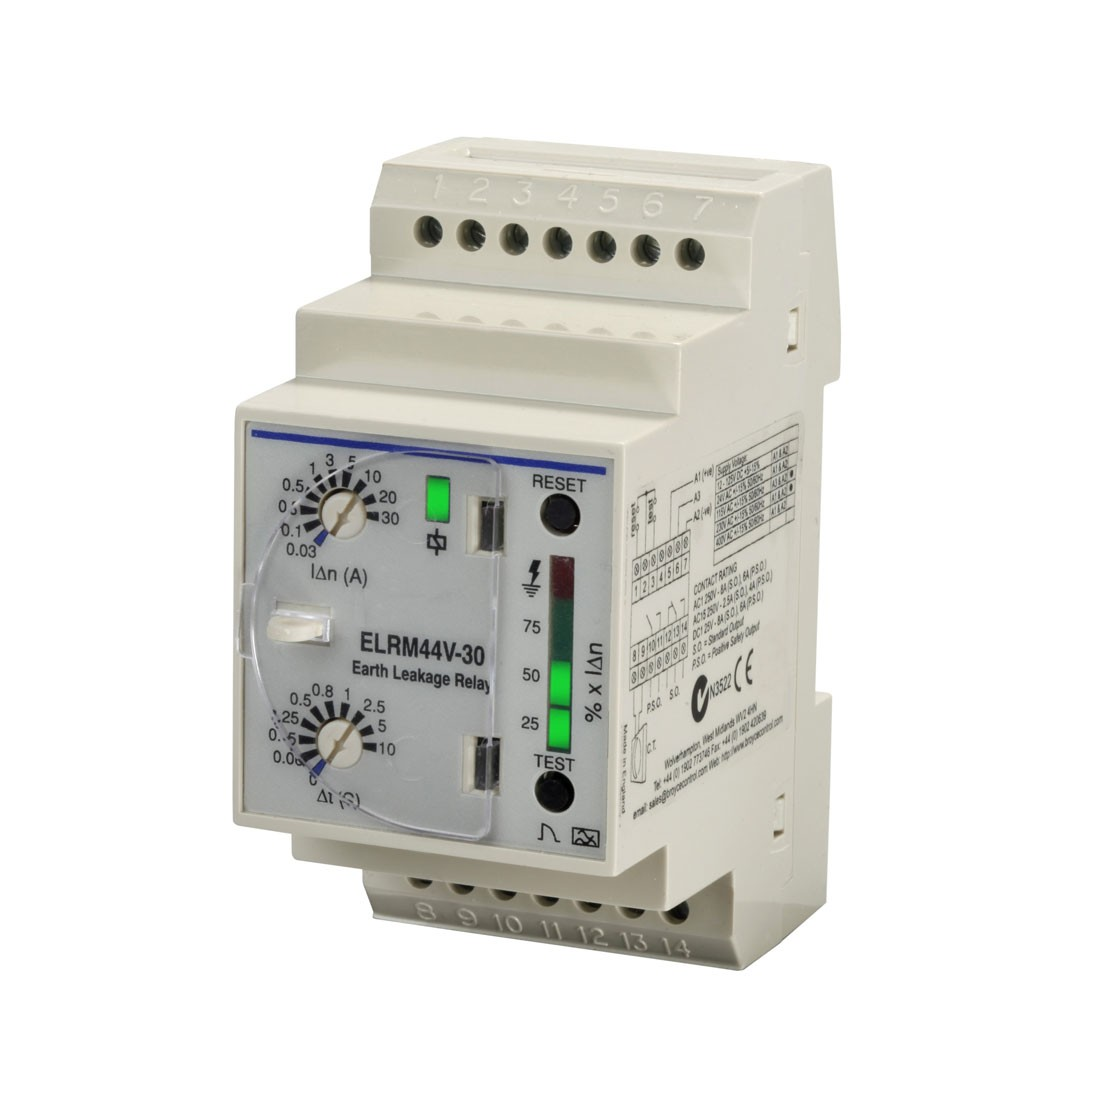 ELRM44V Series - Earth Leakage Relays